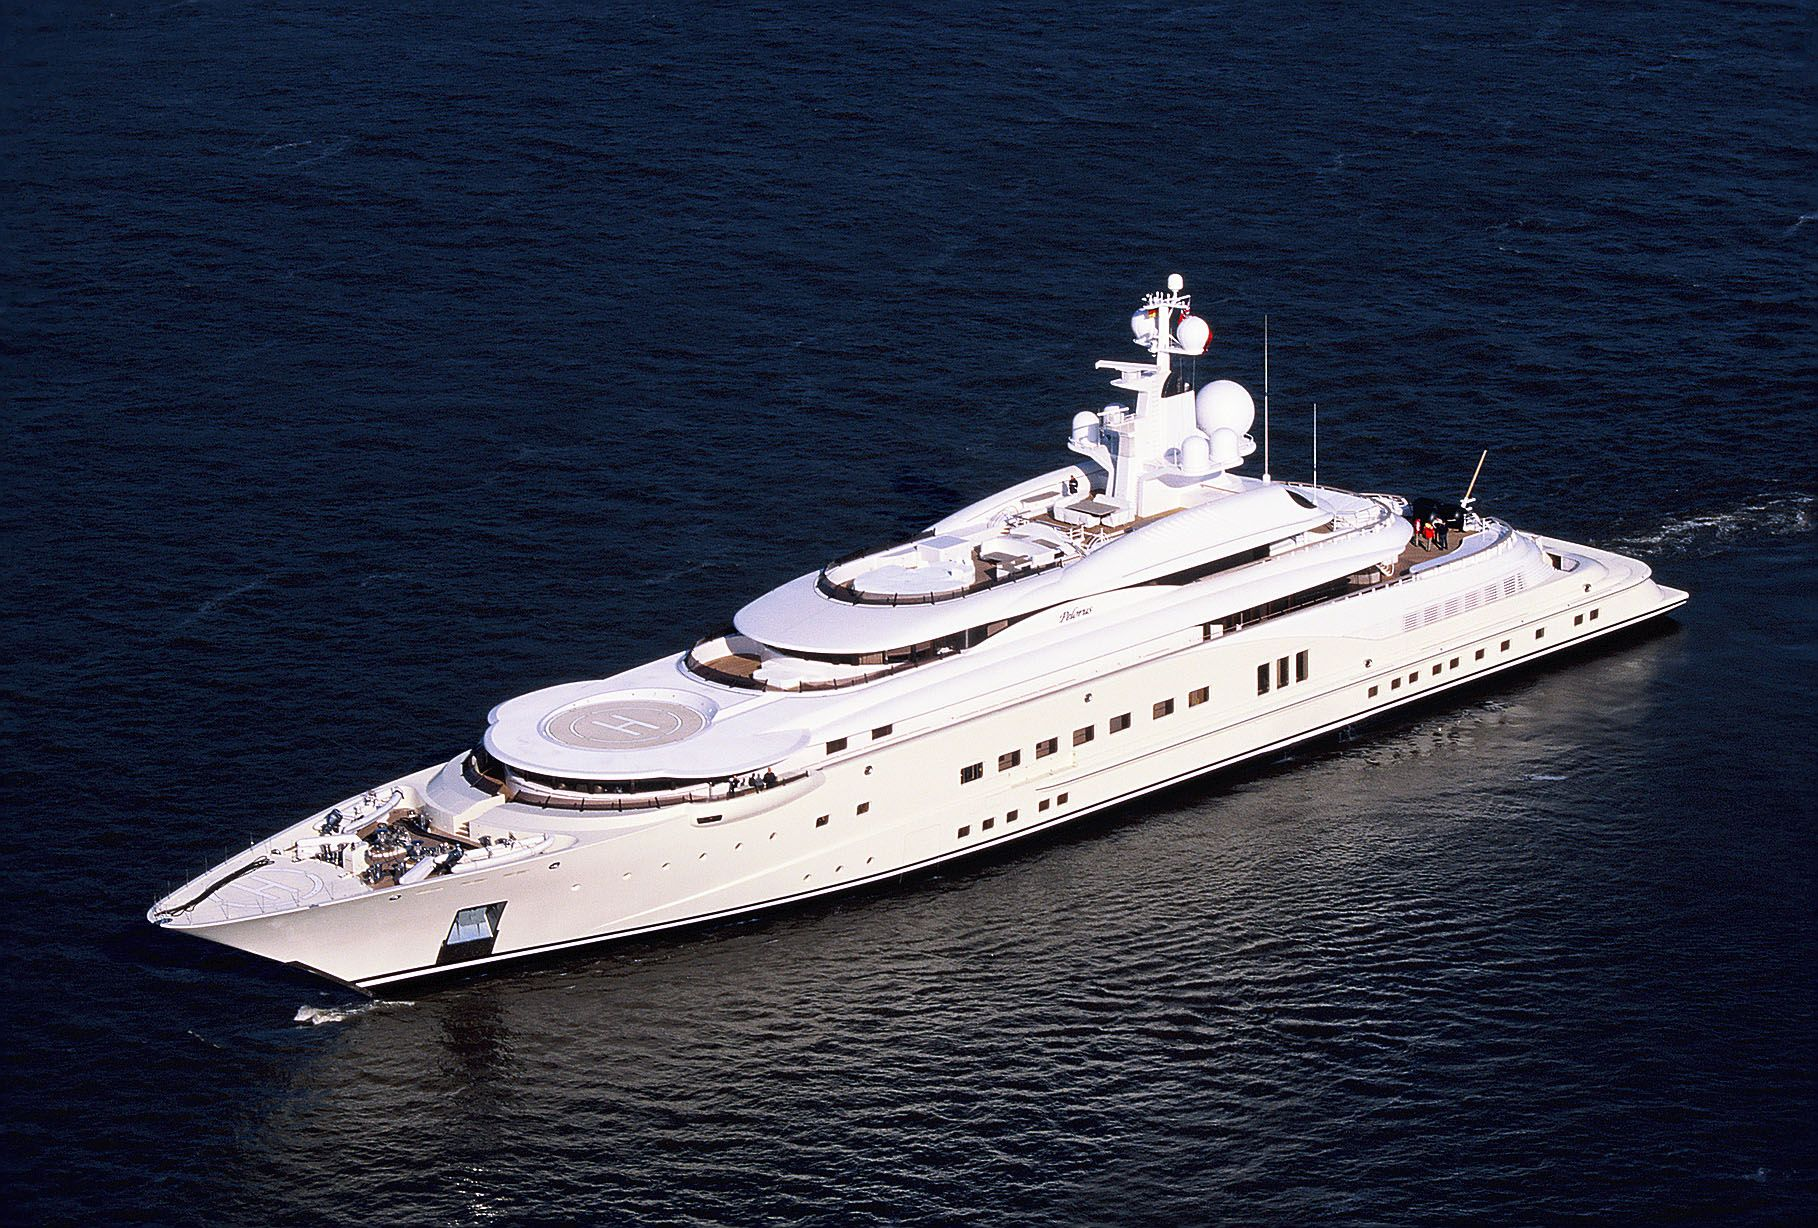 The Eclipse: The Most Expensive Yacht Ever | Industry Leaders Magazine - March 31, 2013